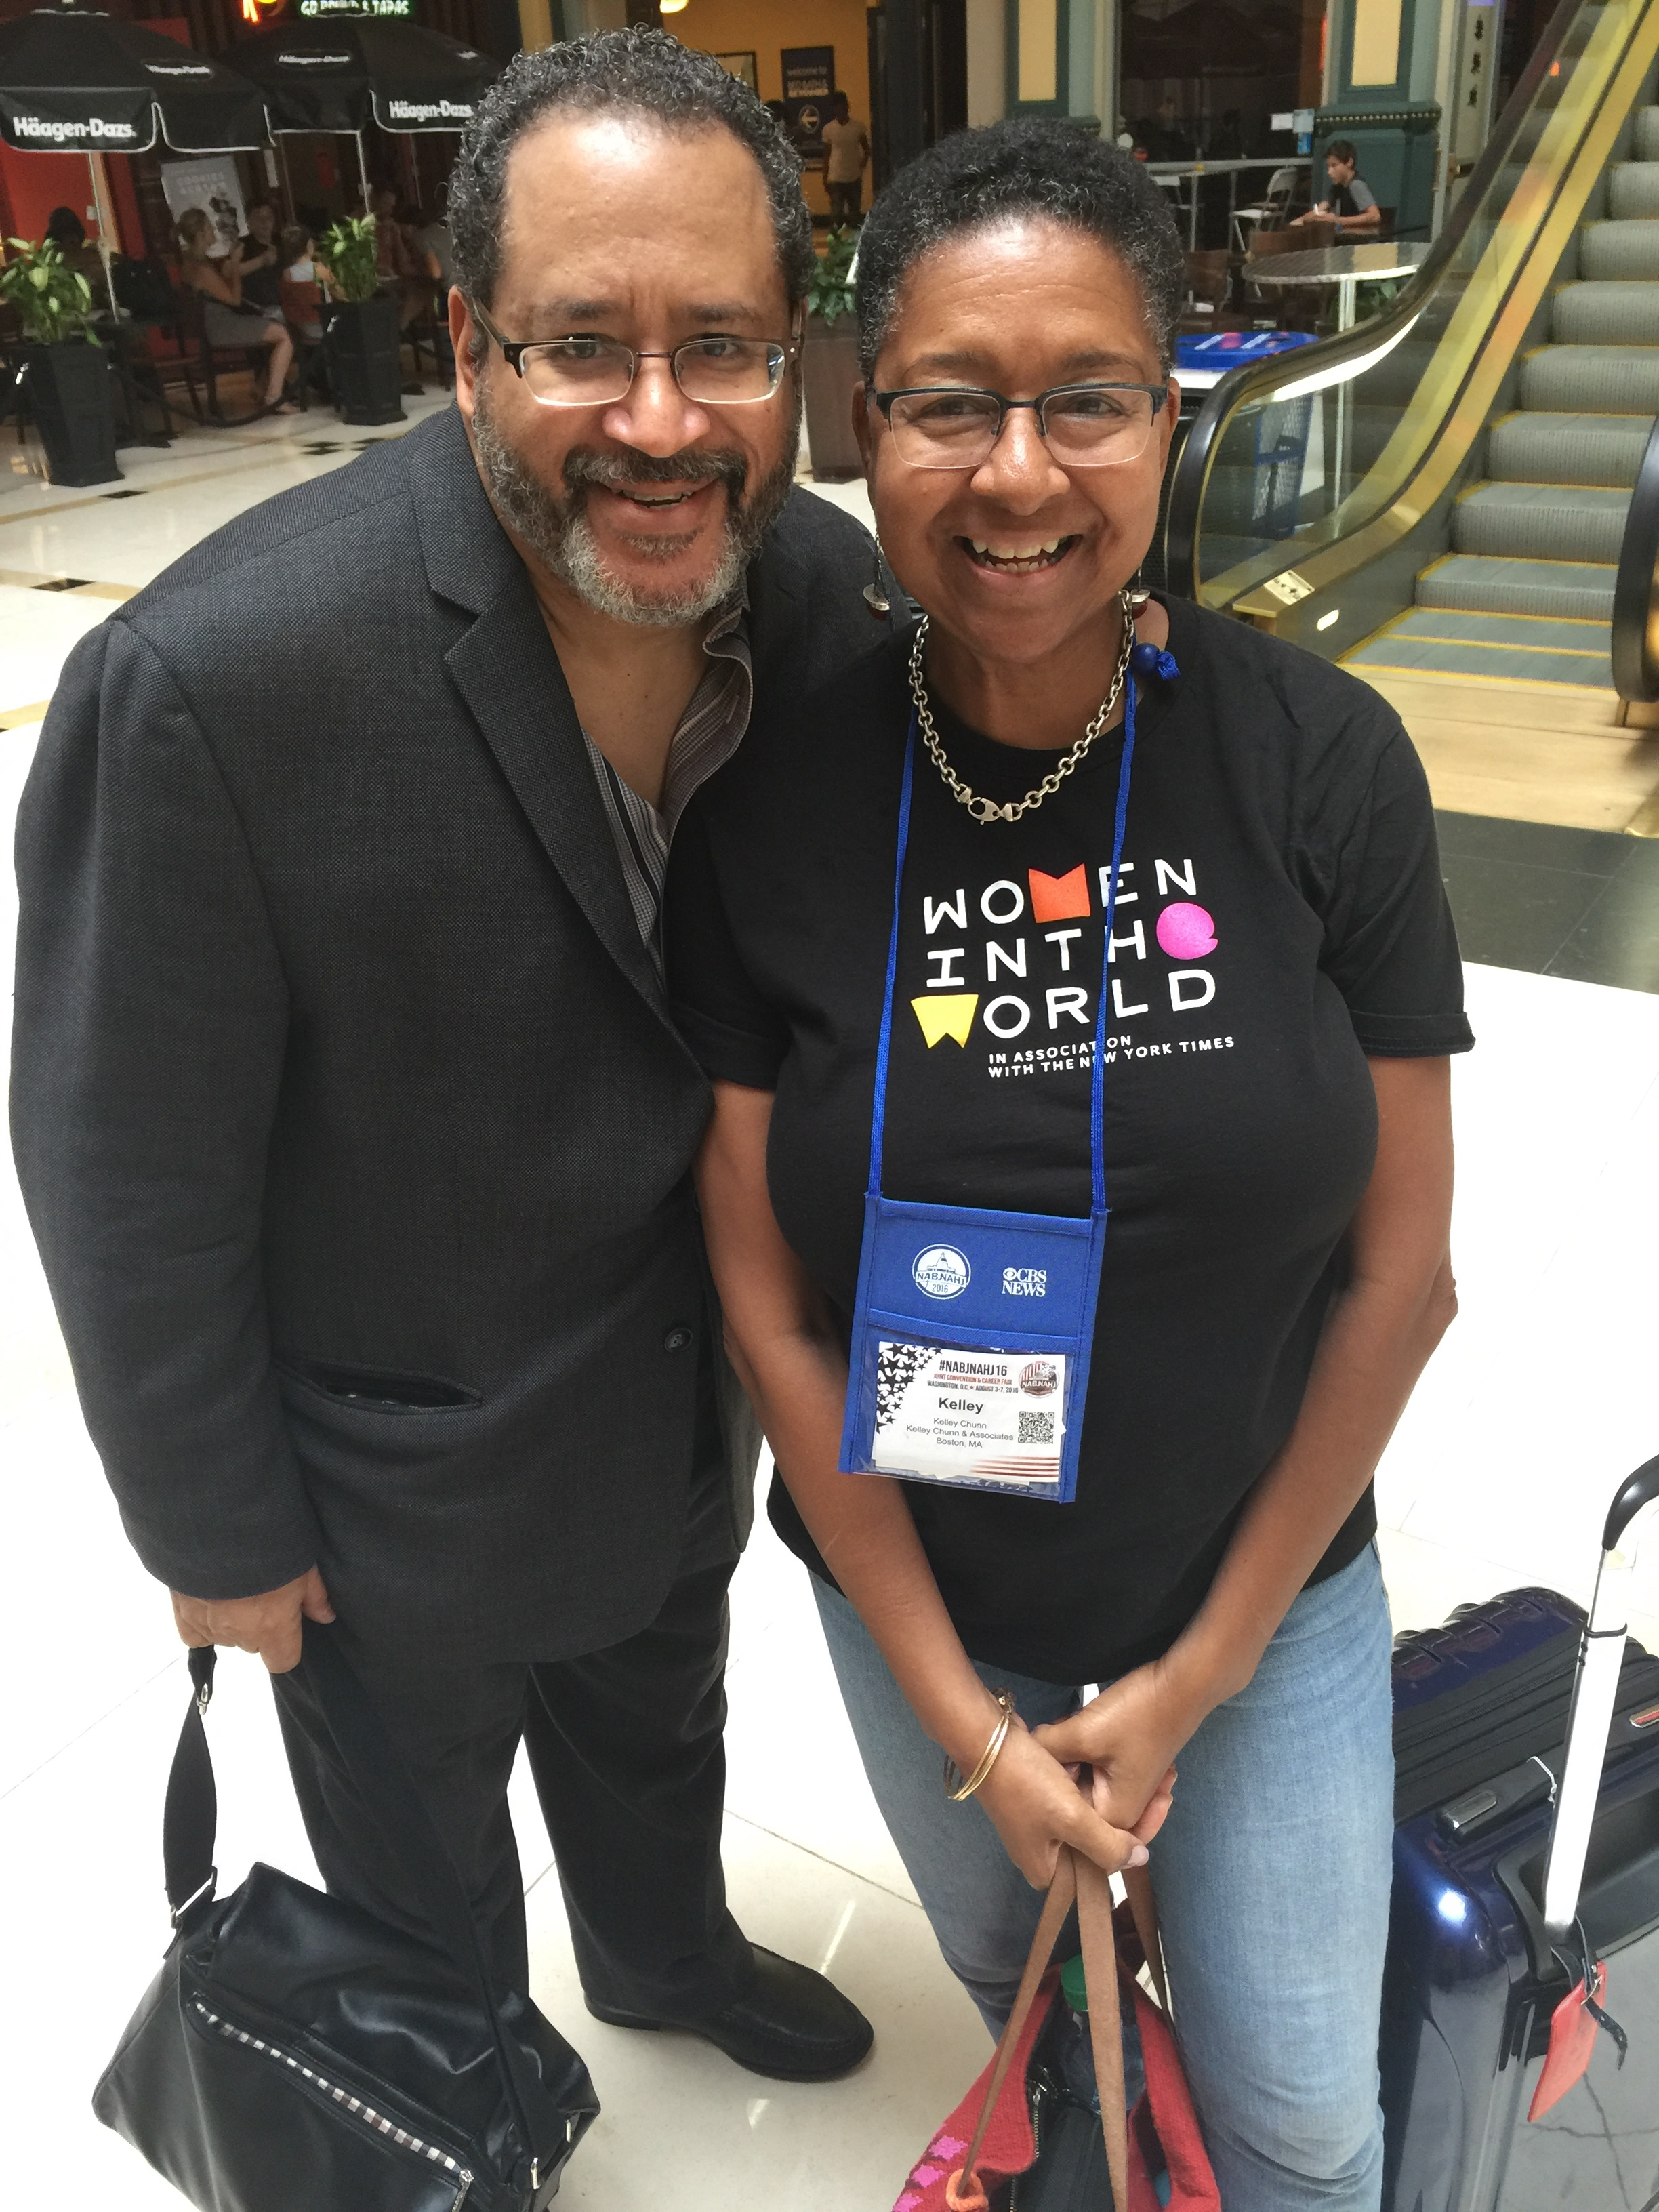 Kelley Chunn with Dr. Michael Eric Dyson at the National Association of Black Journalists Convention in Washington, D.C.